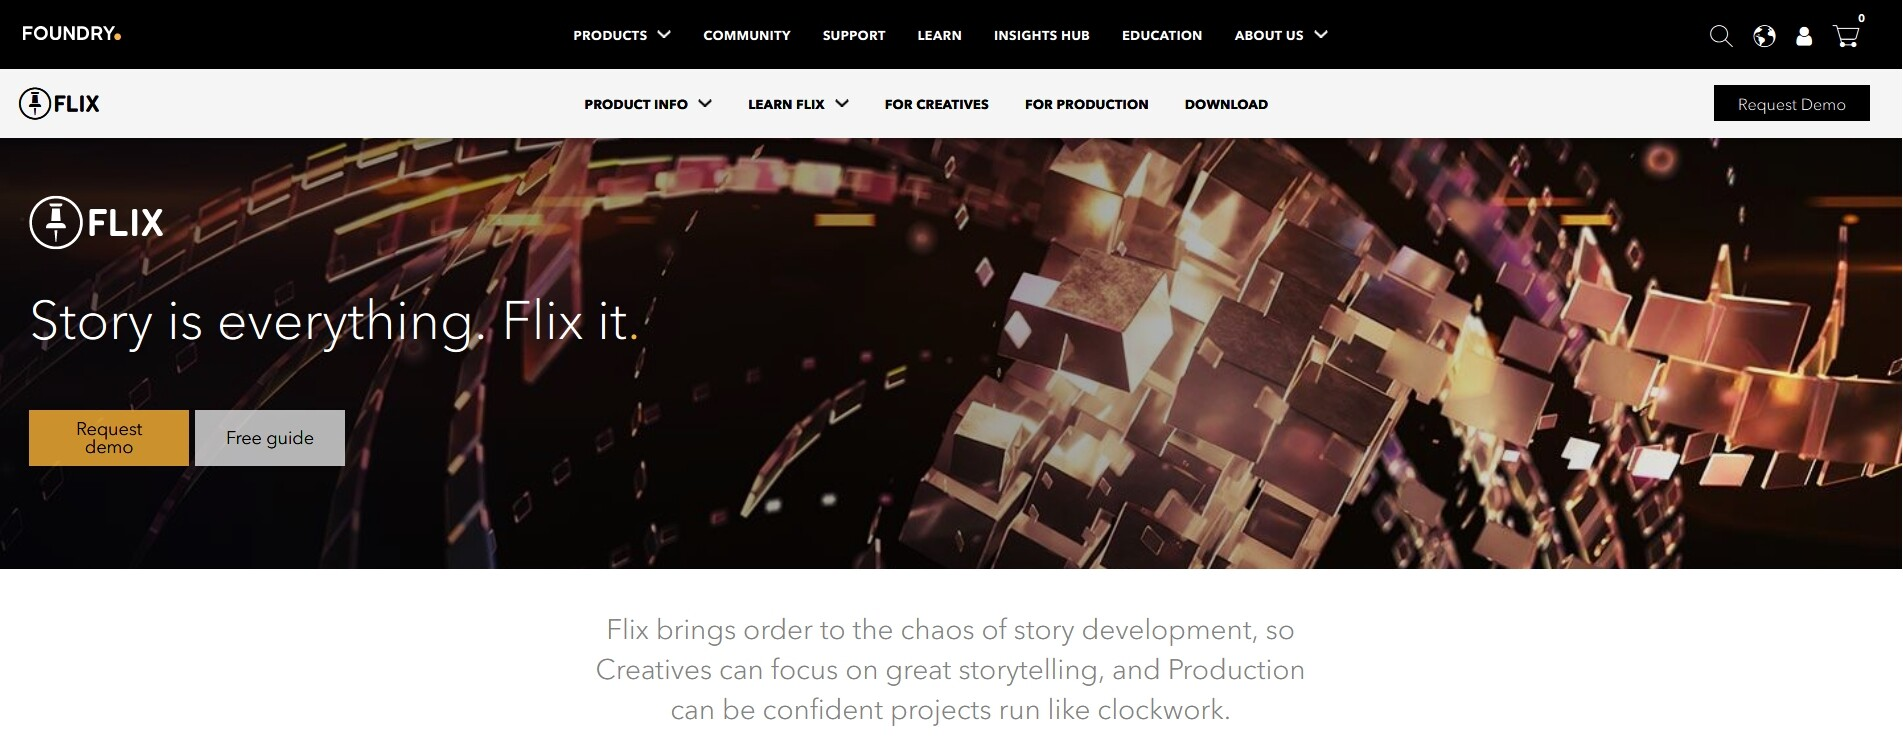 Foundry website with the image.